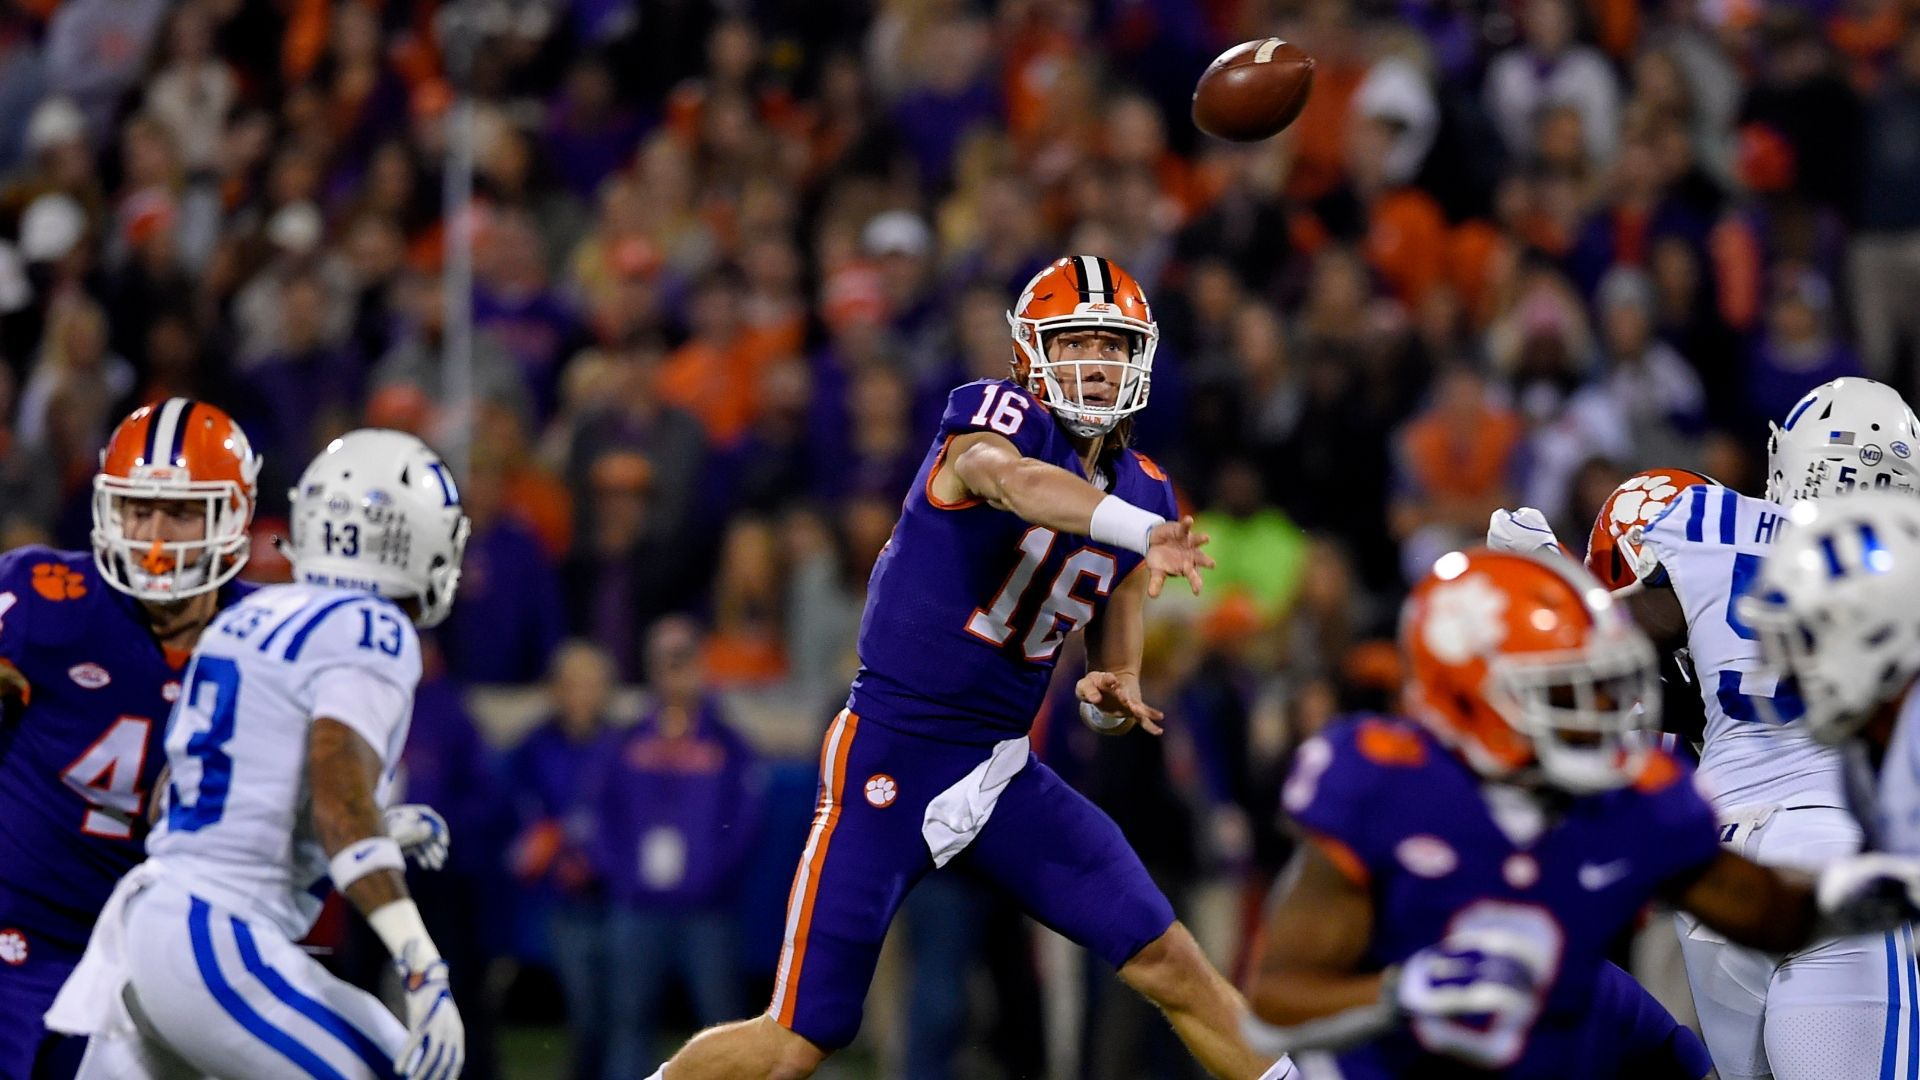 Clemson overcomes slow start to beat Duke